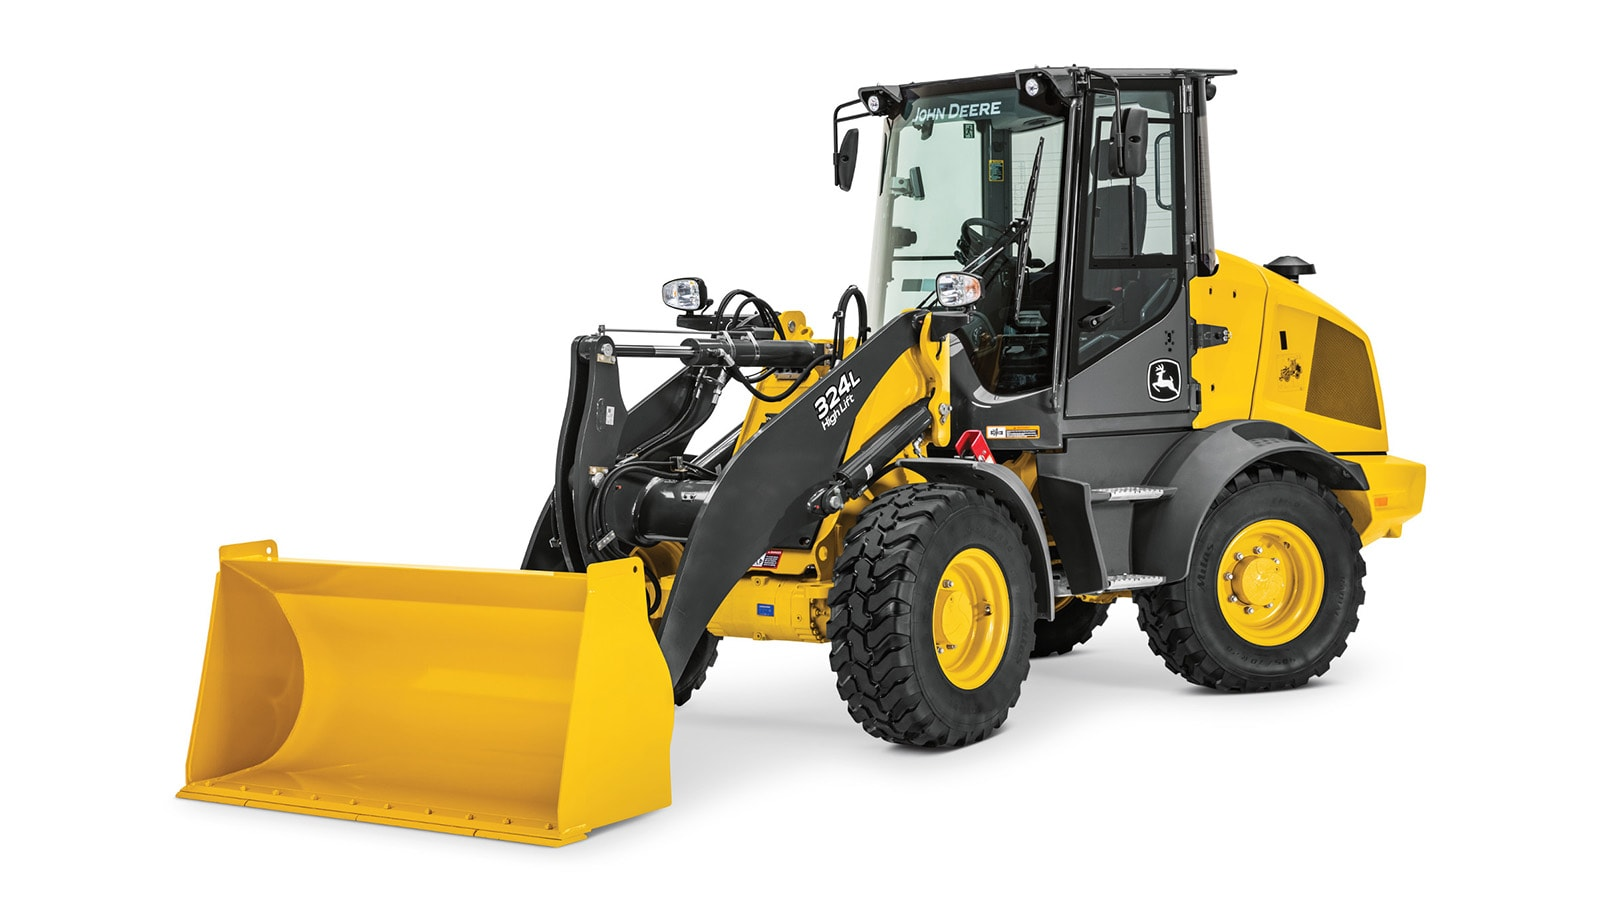 324L and 244L compact wheel loaders